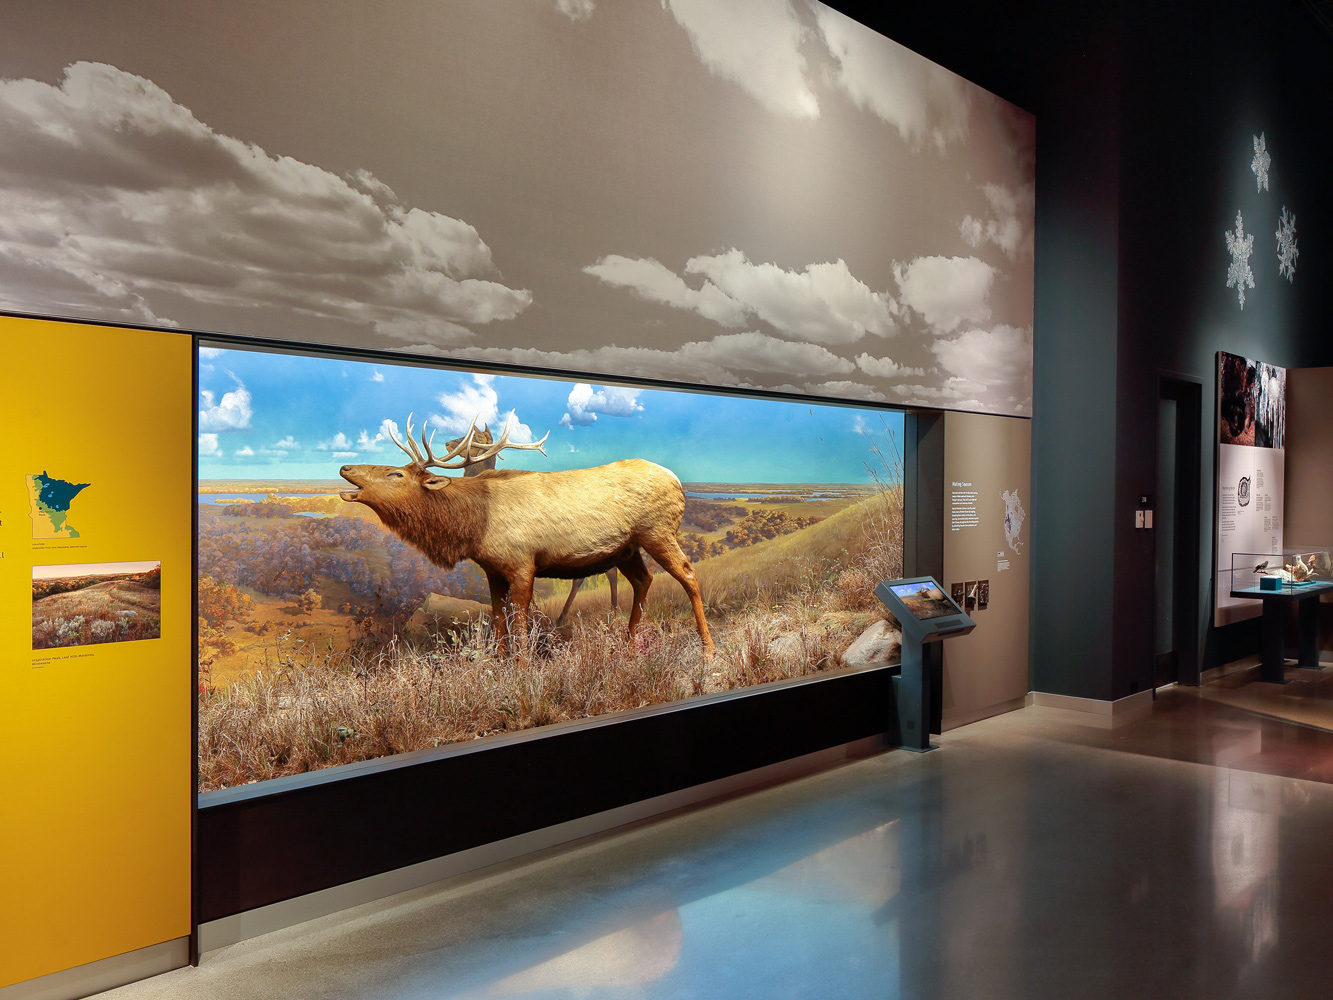 The bell Museum's moose diorama